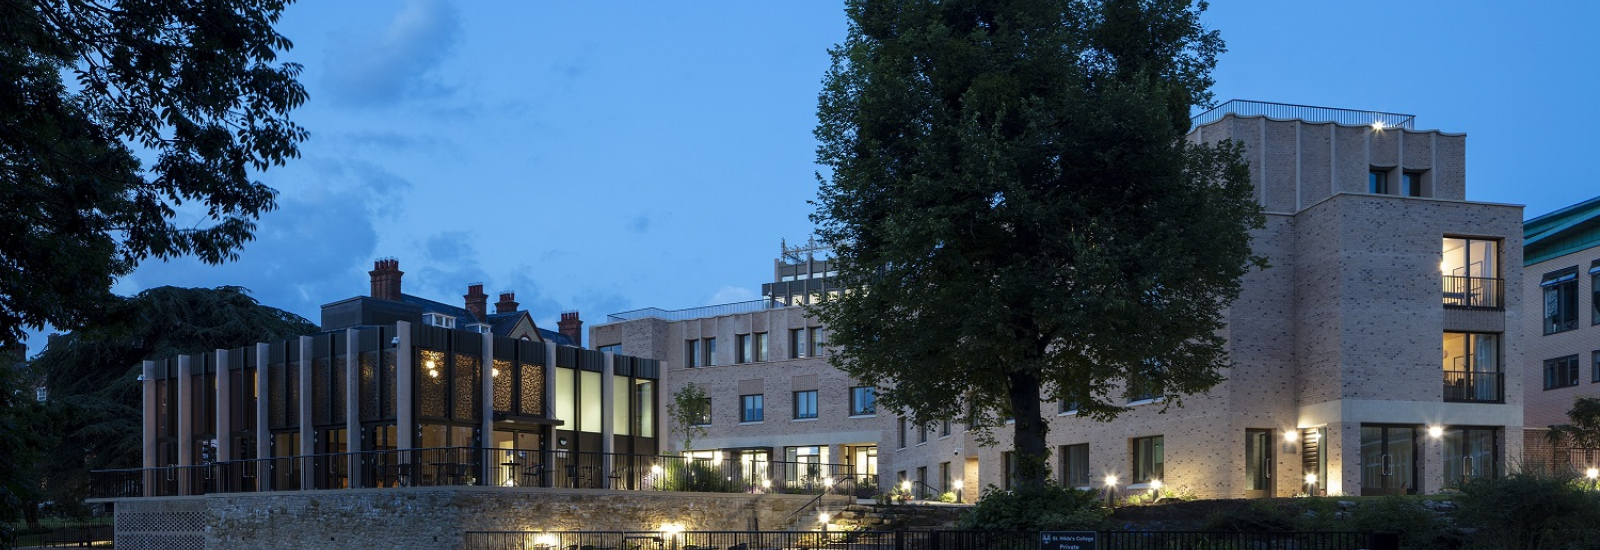 Pavilion and Anniversary Building at St Hilda's College photo by Nick Kane